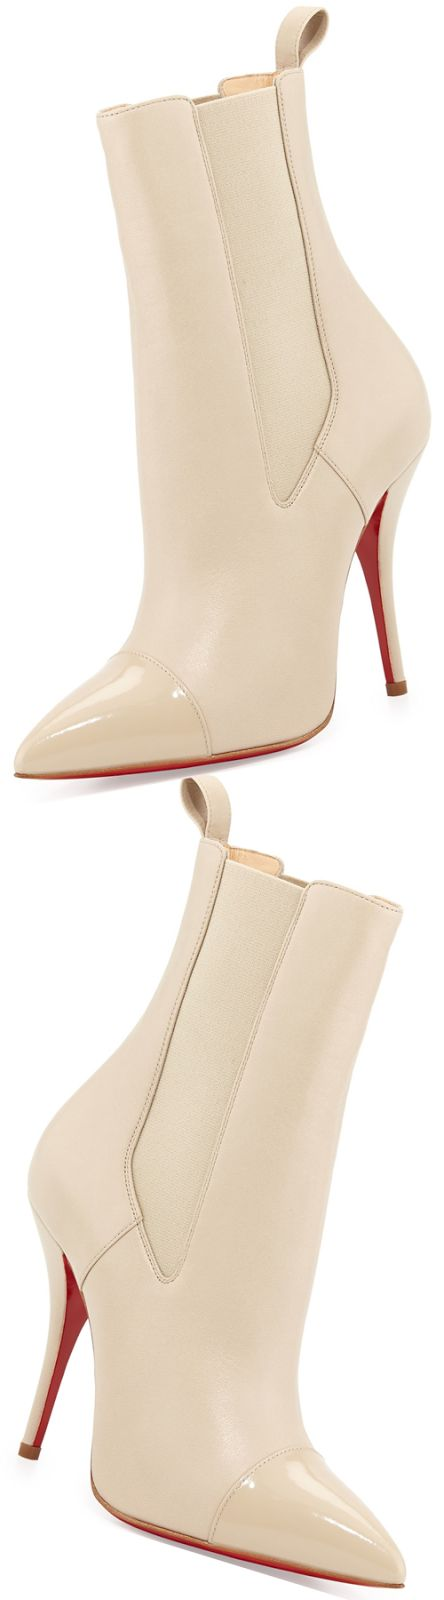 Christian Louboutin Tucson Cap-Toe Red Sole Bootie, Nude Fall 2014 #CL #Louboutins